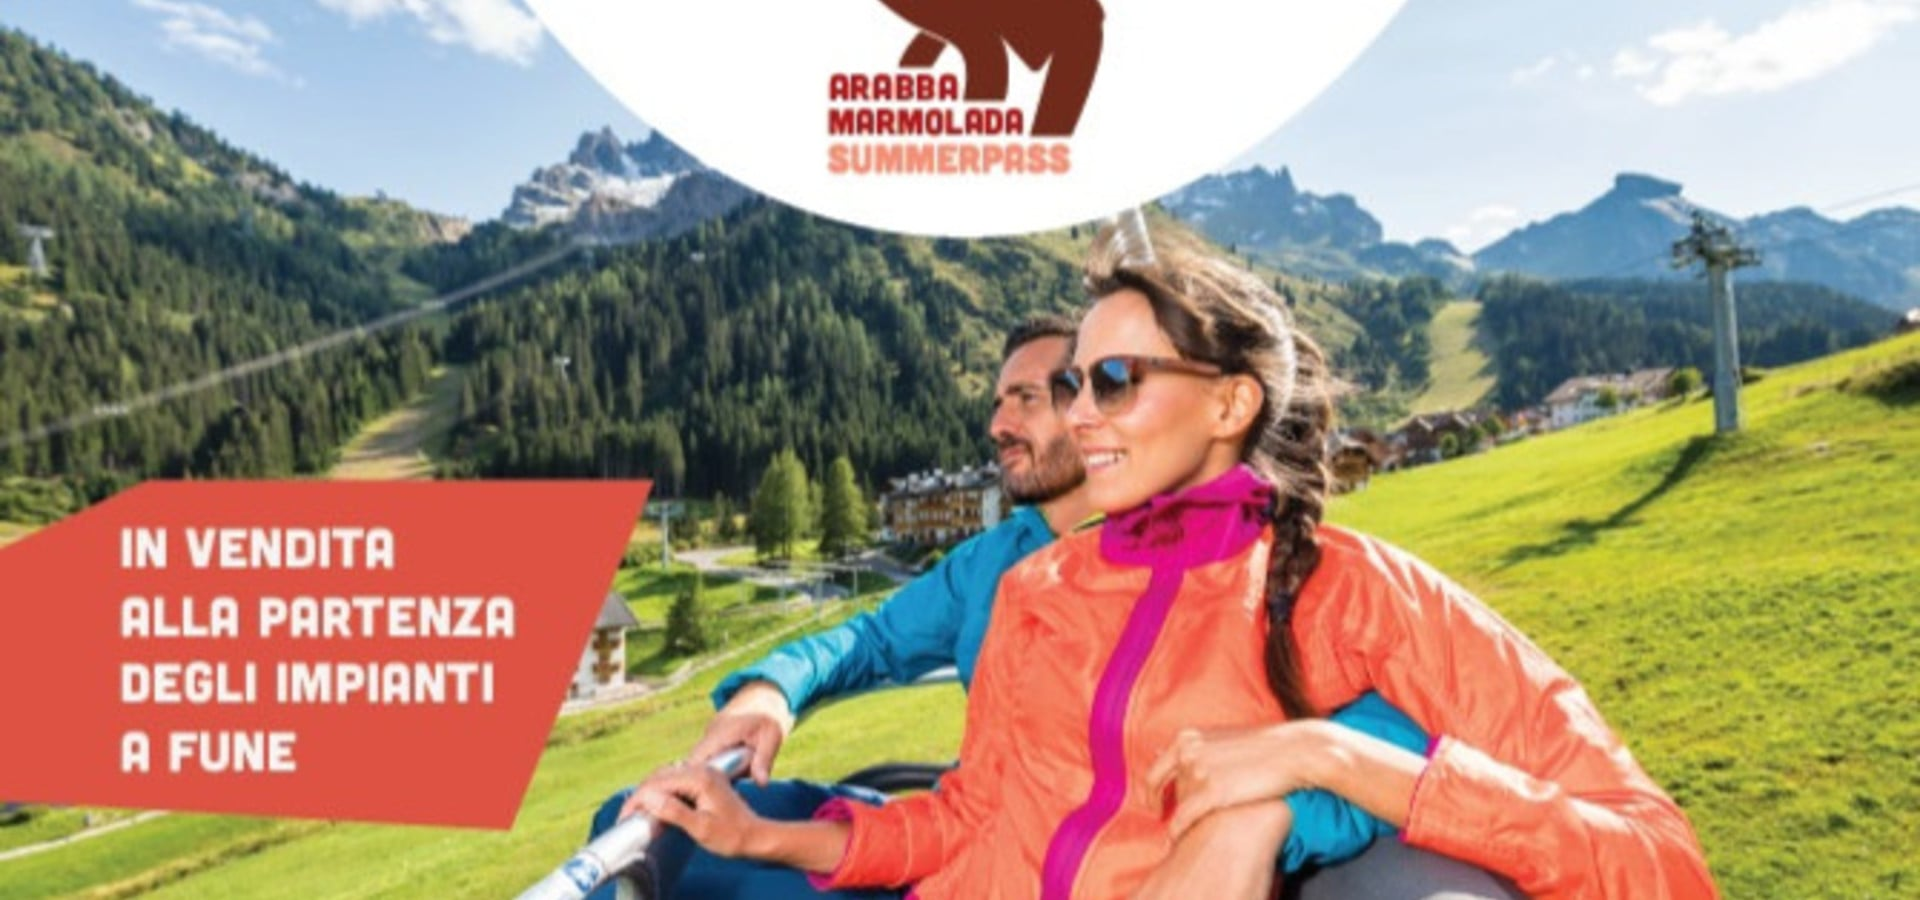 Arabba Marmolada Summer Pass